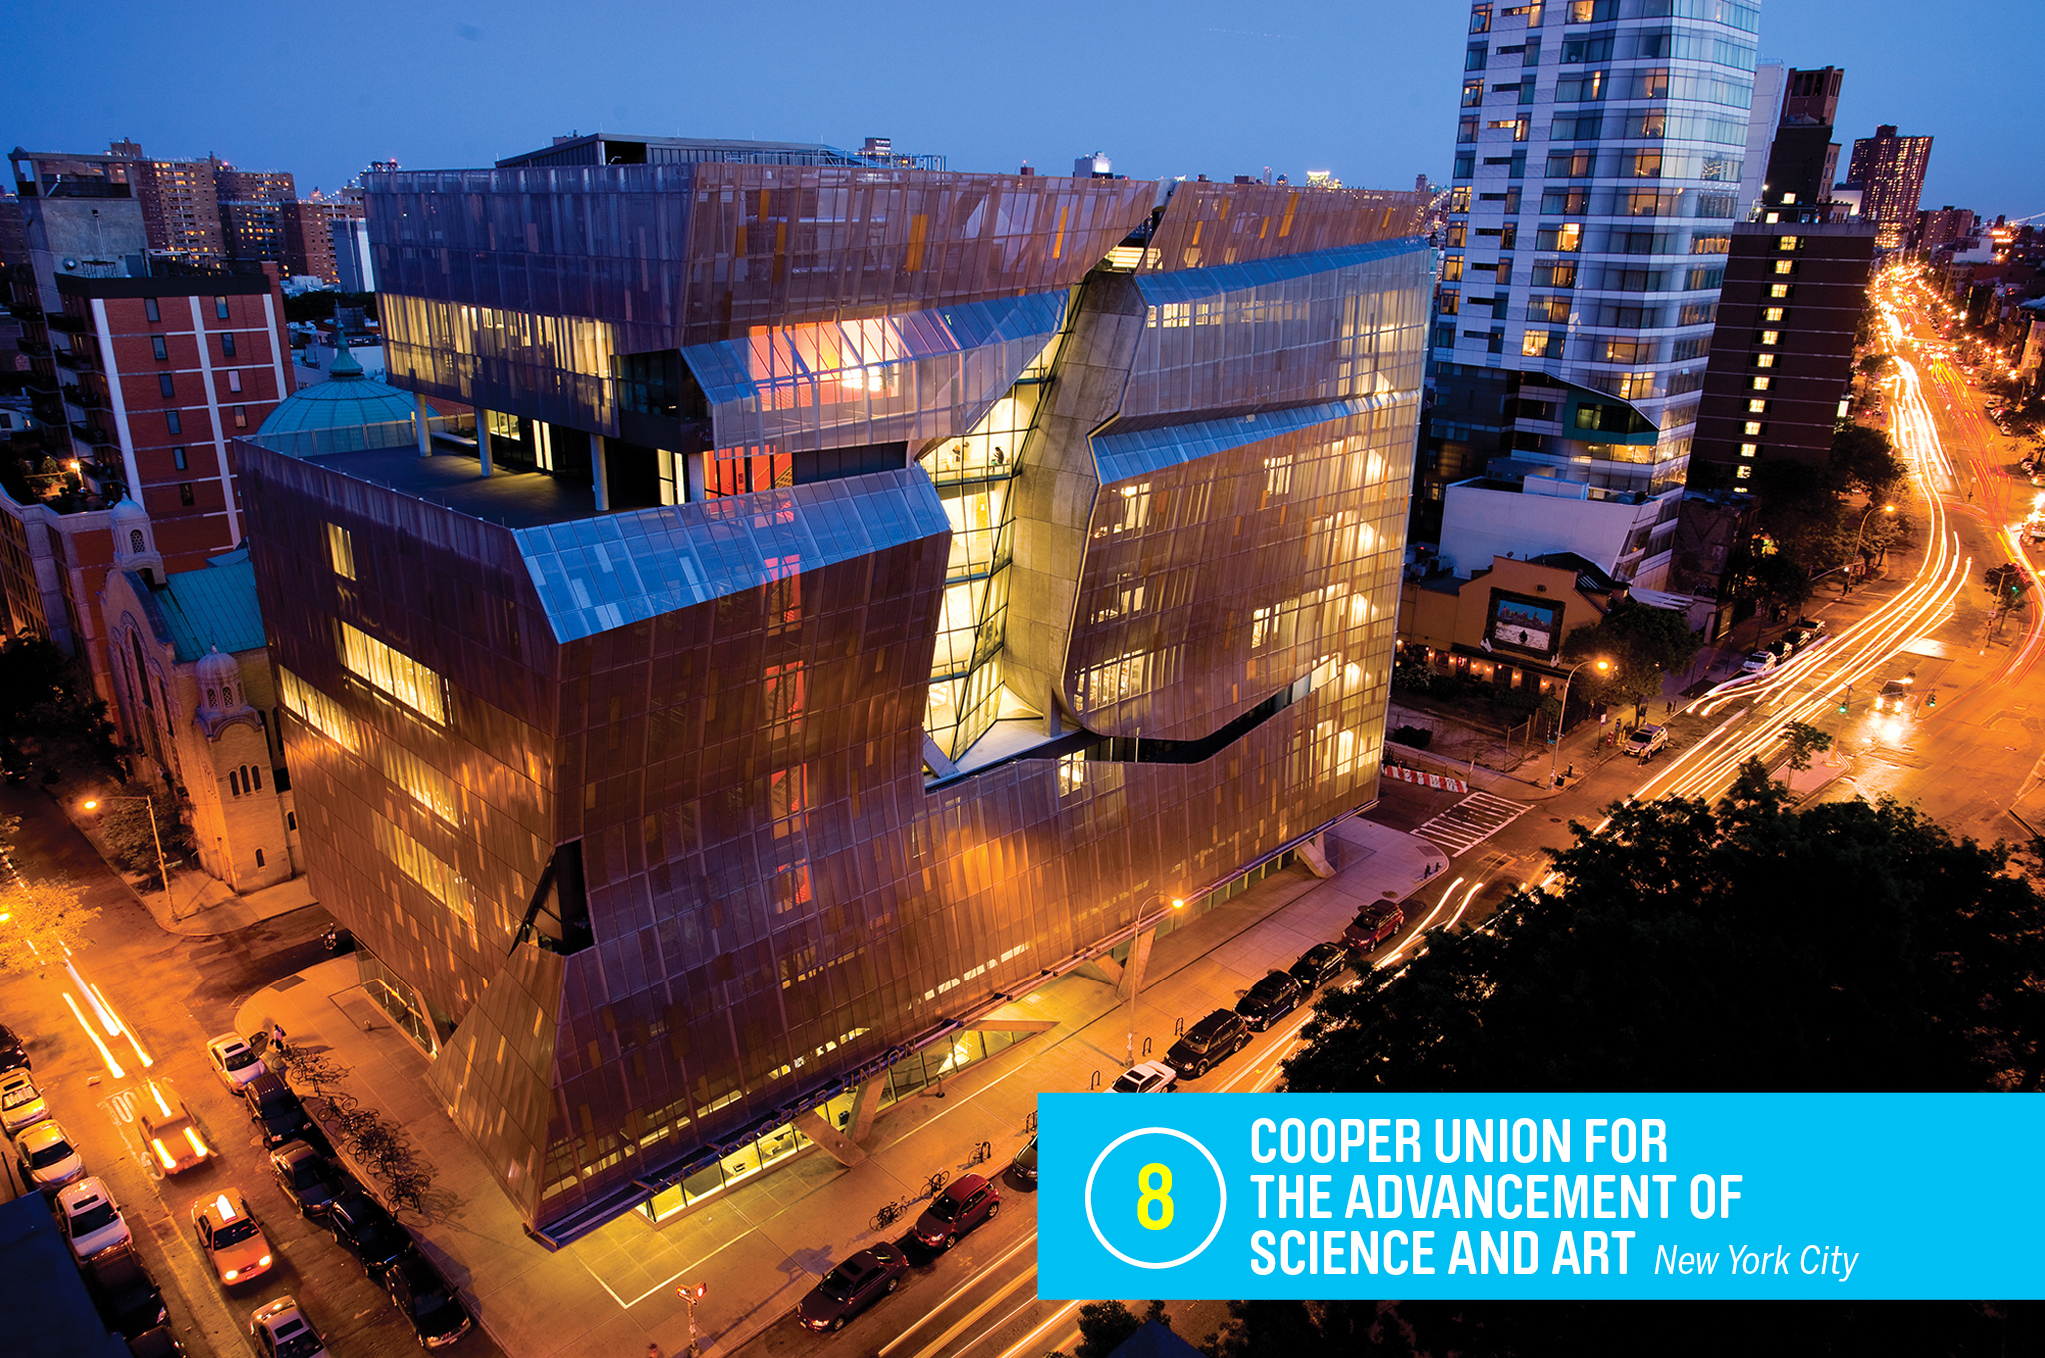 "<a href=""https://money.com/best-colleges/profile/cooper-union-for-the-advancement-of-science-and-art/"" target=""_blank"">Cooper Union</a> is unique—a small, urban school that offers degrees only in art, architecture, and engineering. Though Cooper Union no longer has the free tuition policy it was founded with, it's still much more affordable than other elite private colleges.                                        <a href=""https://money.com/best-colleges/profile/cooper-union-for-the-advancement-of-science-and-art/"" target=""_blank"">FULL PROFILE</a>"